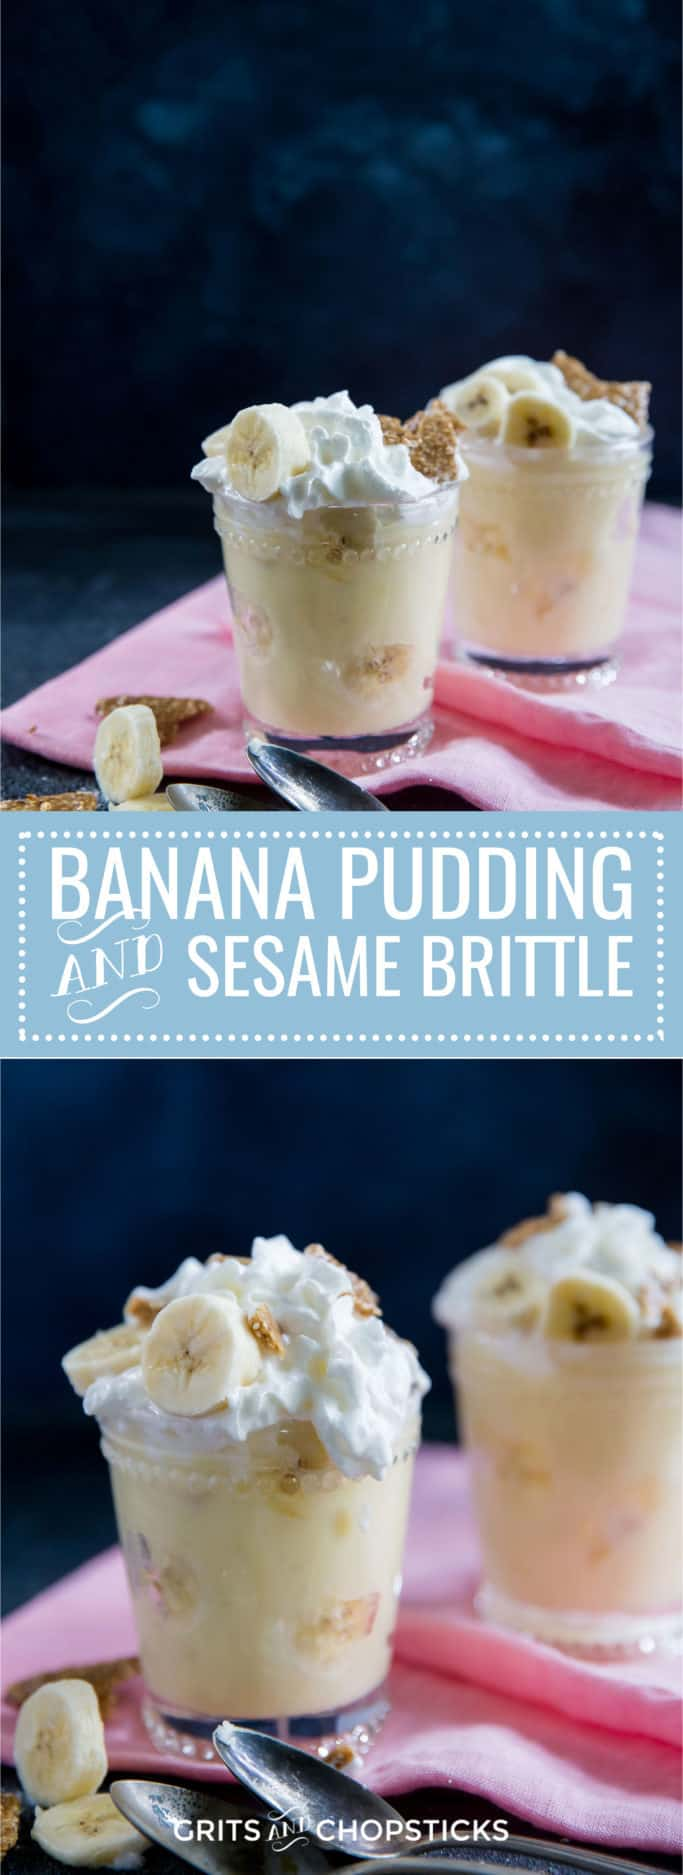 This Southern style banana pudding gets a modern twist with the addition of crunchy sesame brittle